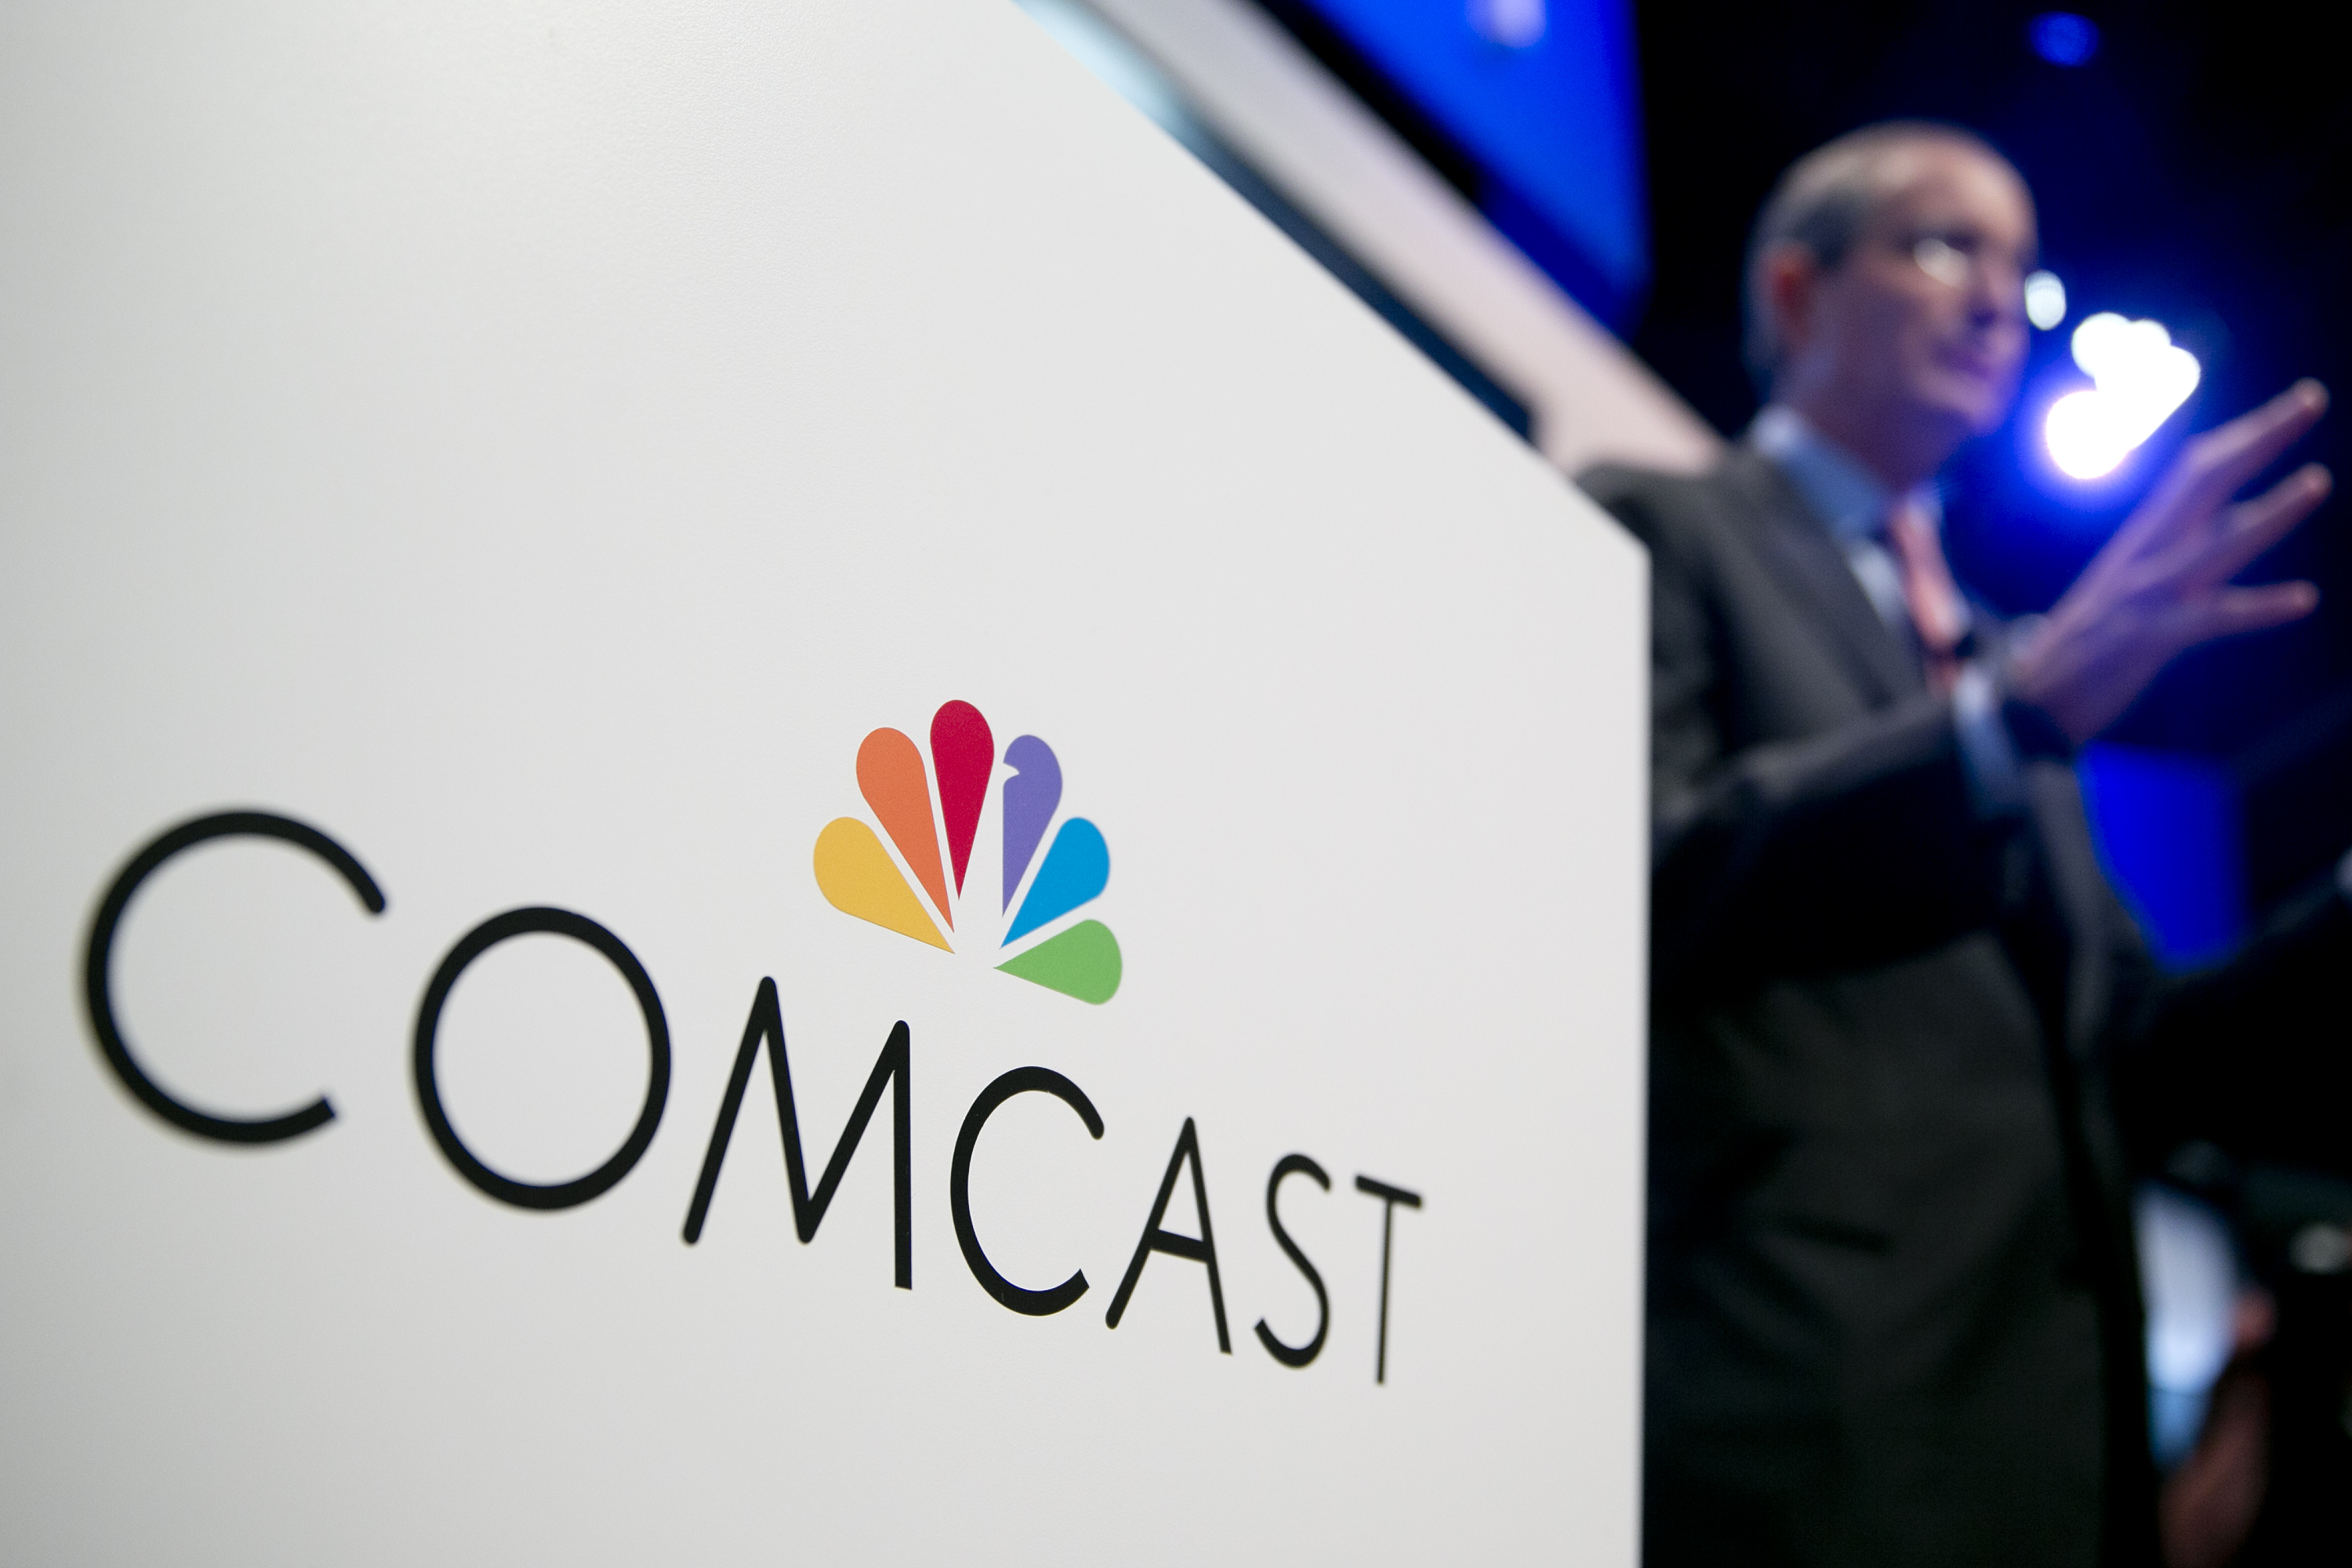 The Comcast Corp. logo is seen as Brian Roberts, chairman and chief executive officer of Comcast Corp., right, speaks during a news conference at the National Cable and Telecommunications Association (NCTA) Cable Show in Washington, D.C., U.S., on Tuesday, June 11, 2013.